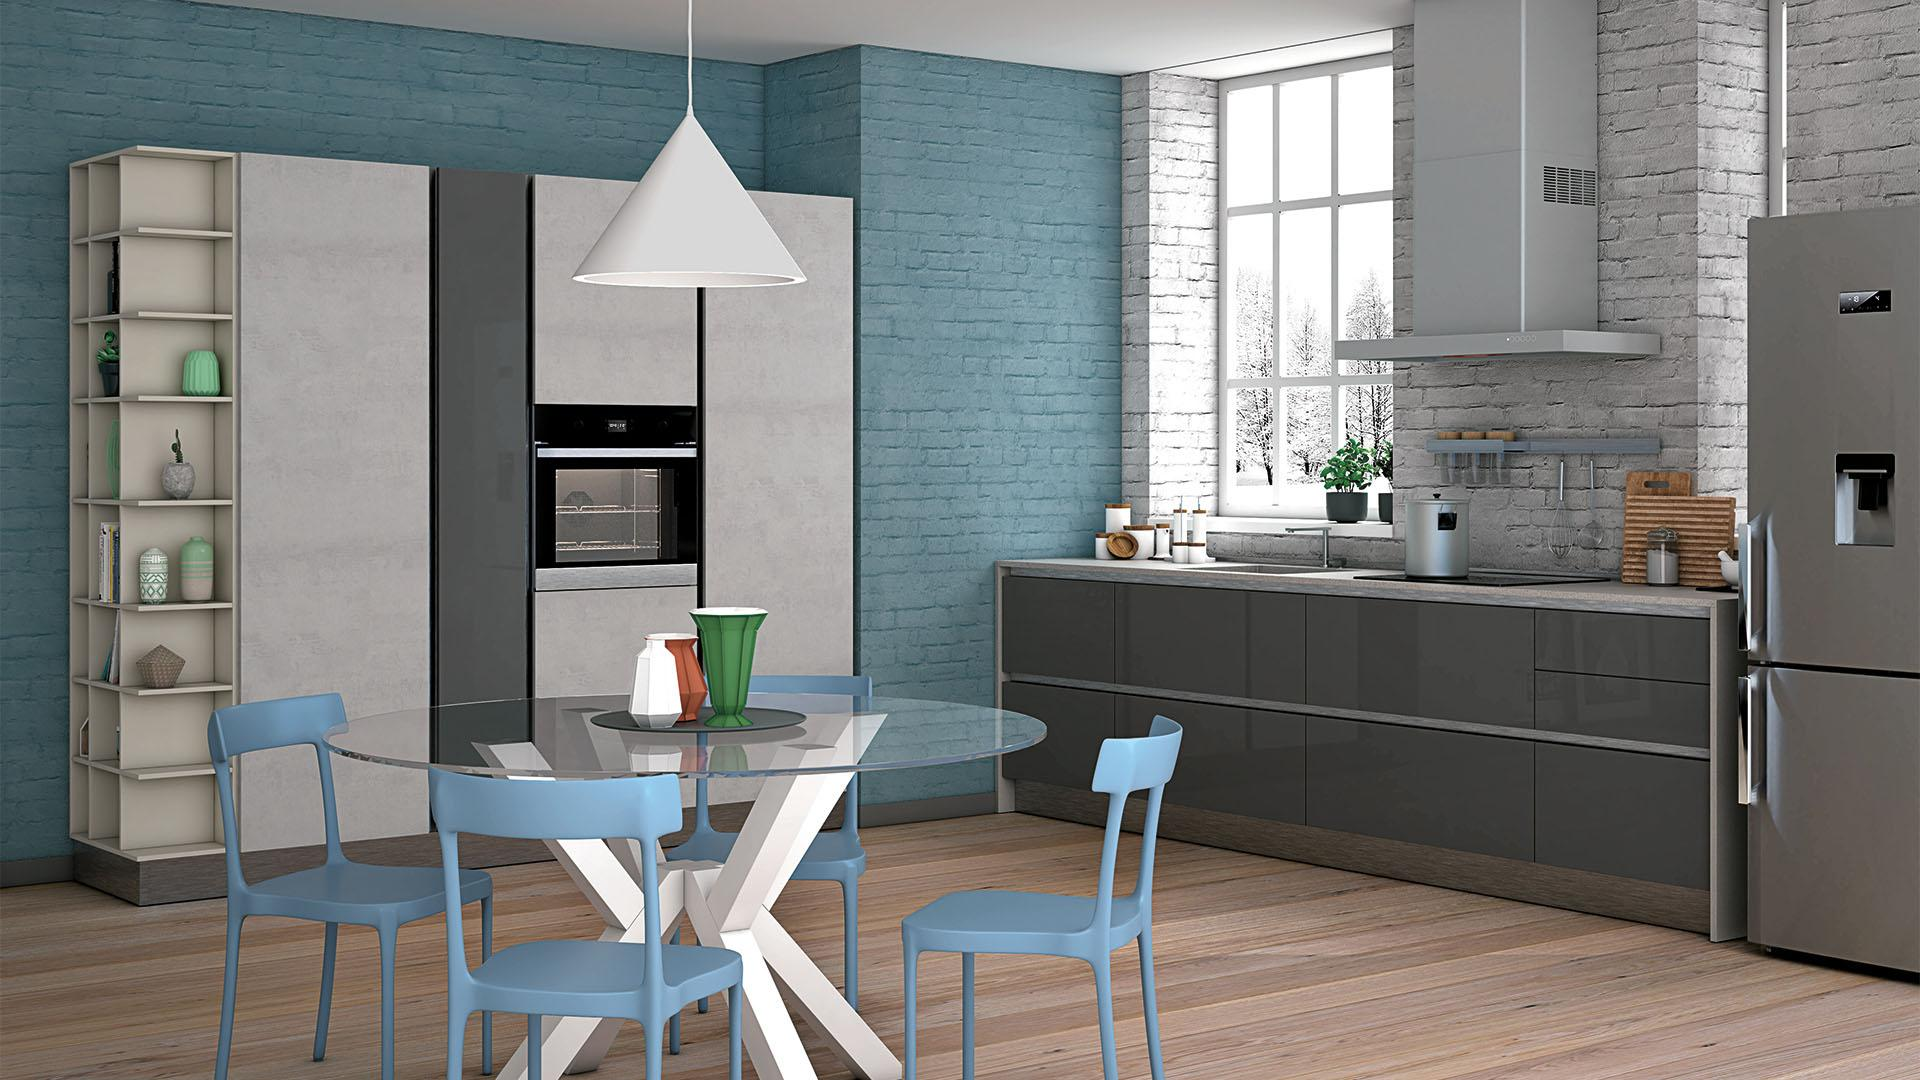 CUCINA COMPONIBILE CREO KITCHENS TABLET